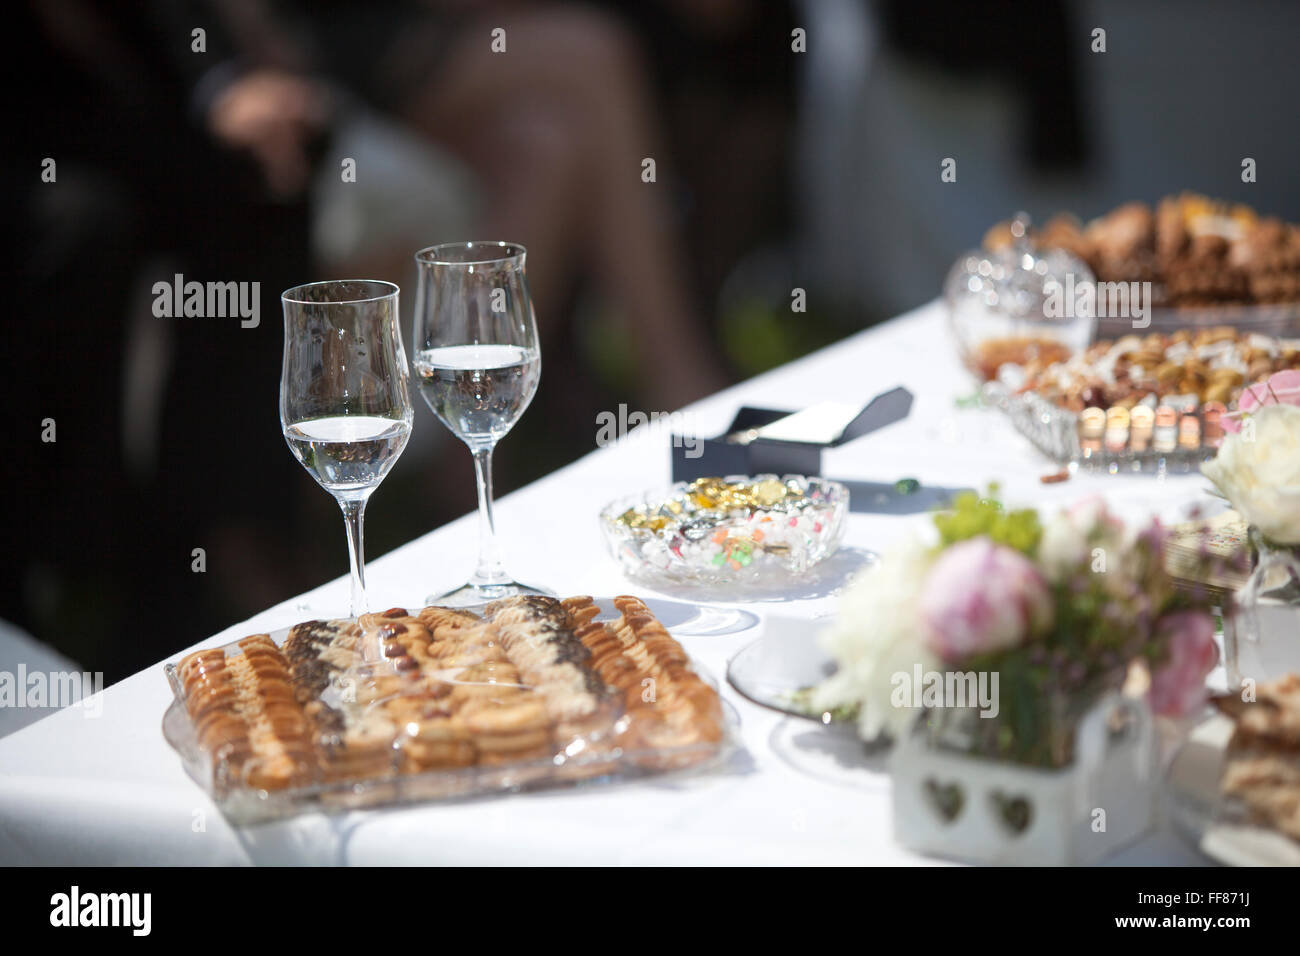 Decoration of a Persian wedding table, outside - Stock Image